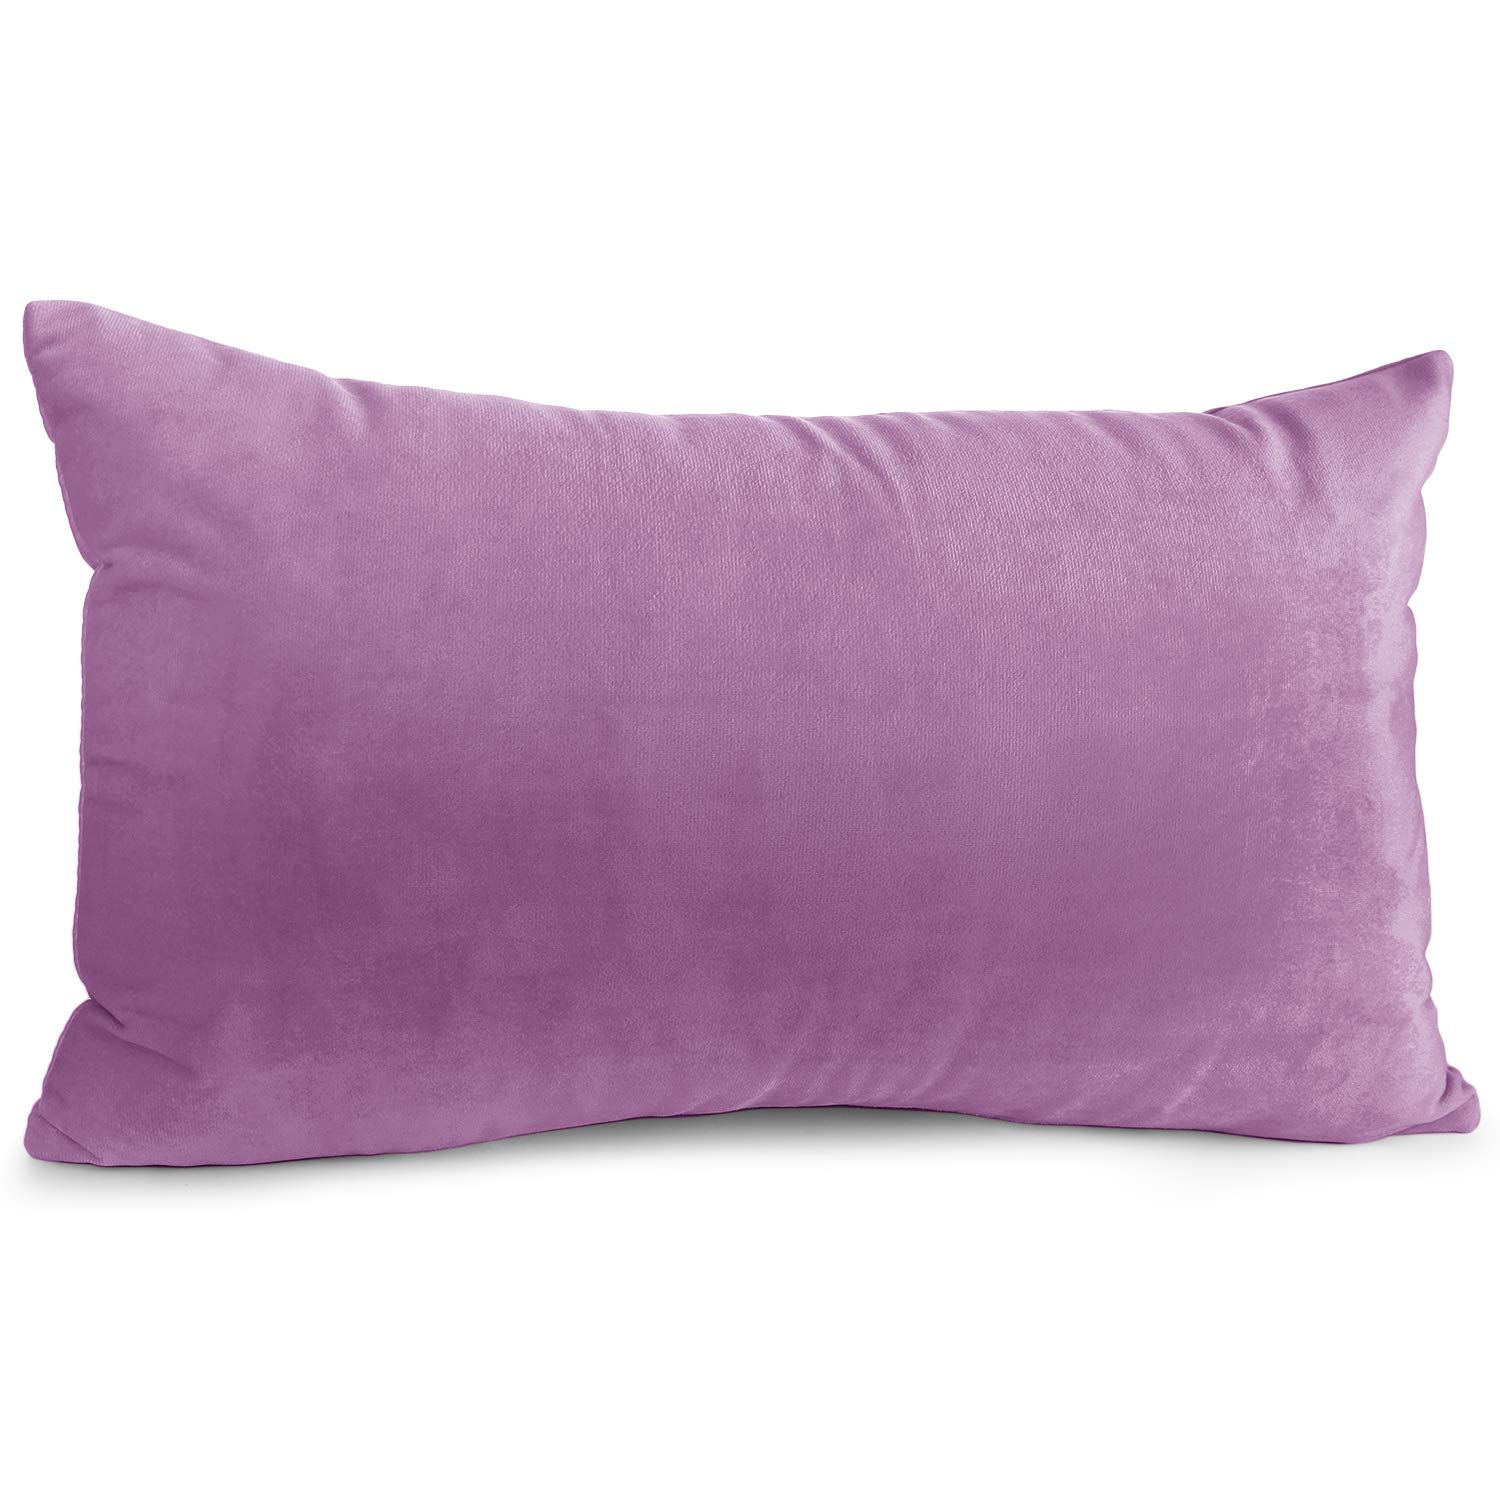 """Nestl Bedding Throw Pillow Cover 12"""" x 20"""" Soft Square Decorative Throw Pillow Covers Cozy Velvet Cushion Case for Sofa Couch Bedroom - Lavender Dream"""